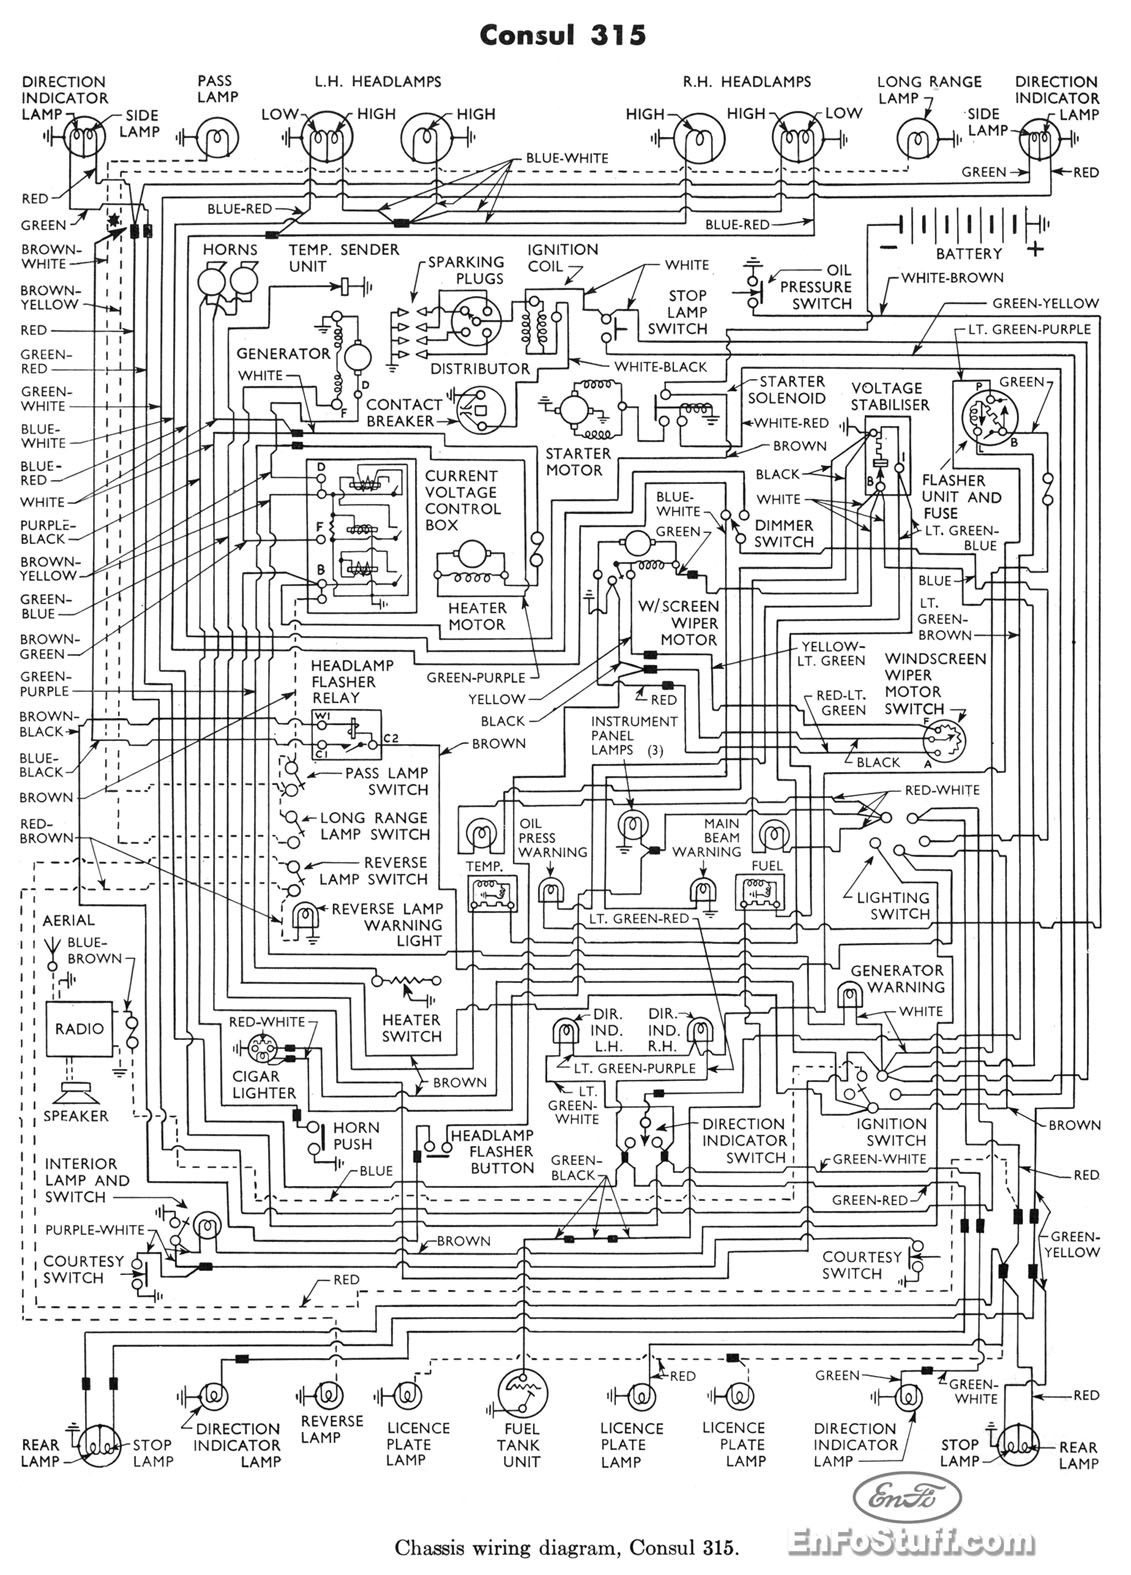 wiring diagram for a ford tractor the wiring diagram ford tractor wiring harness diagram vidim wiring diagram wiring diagram